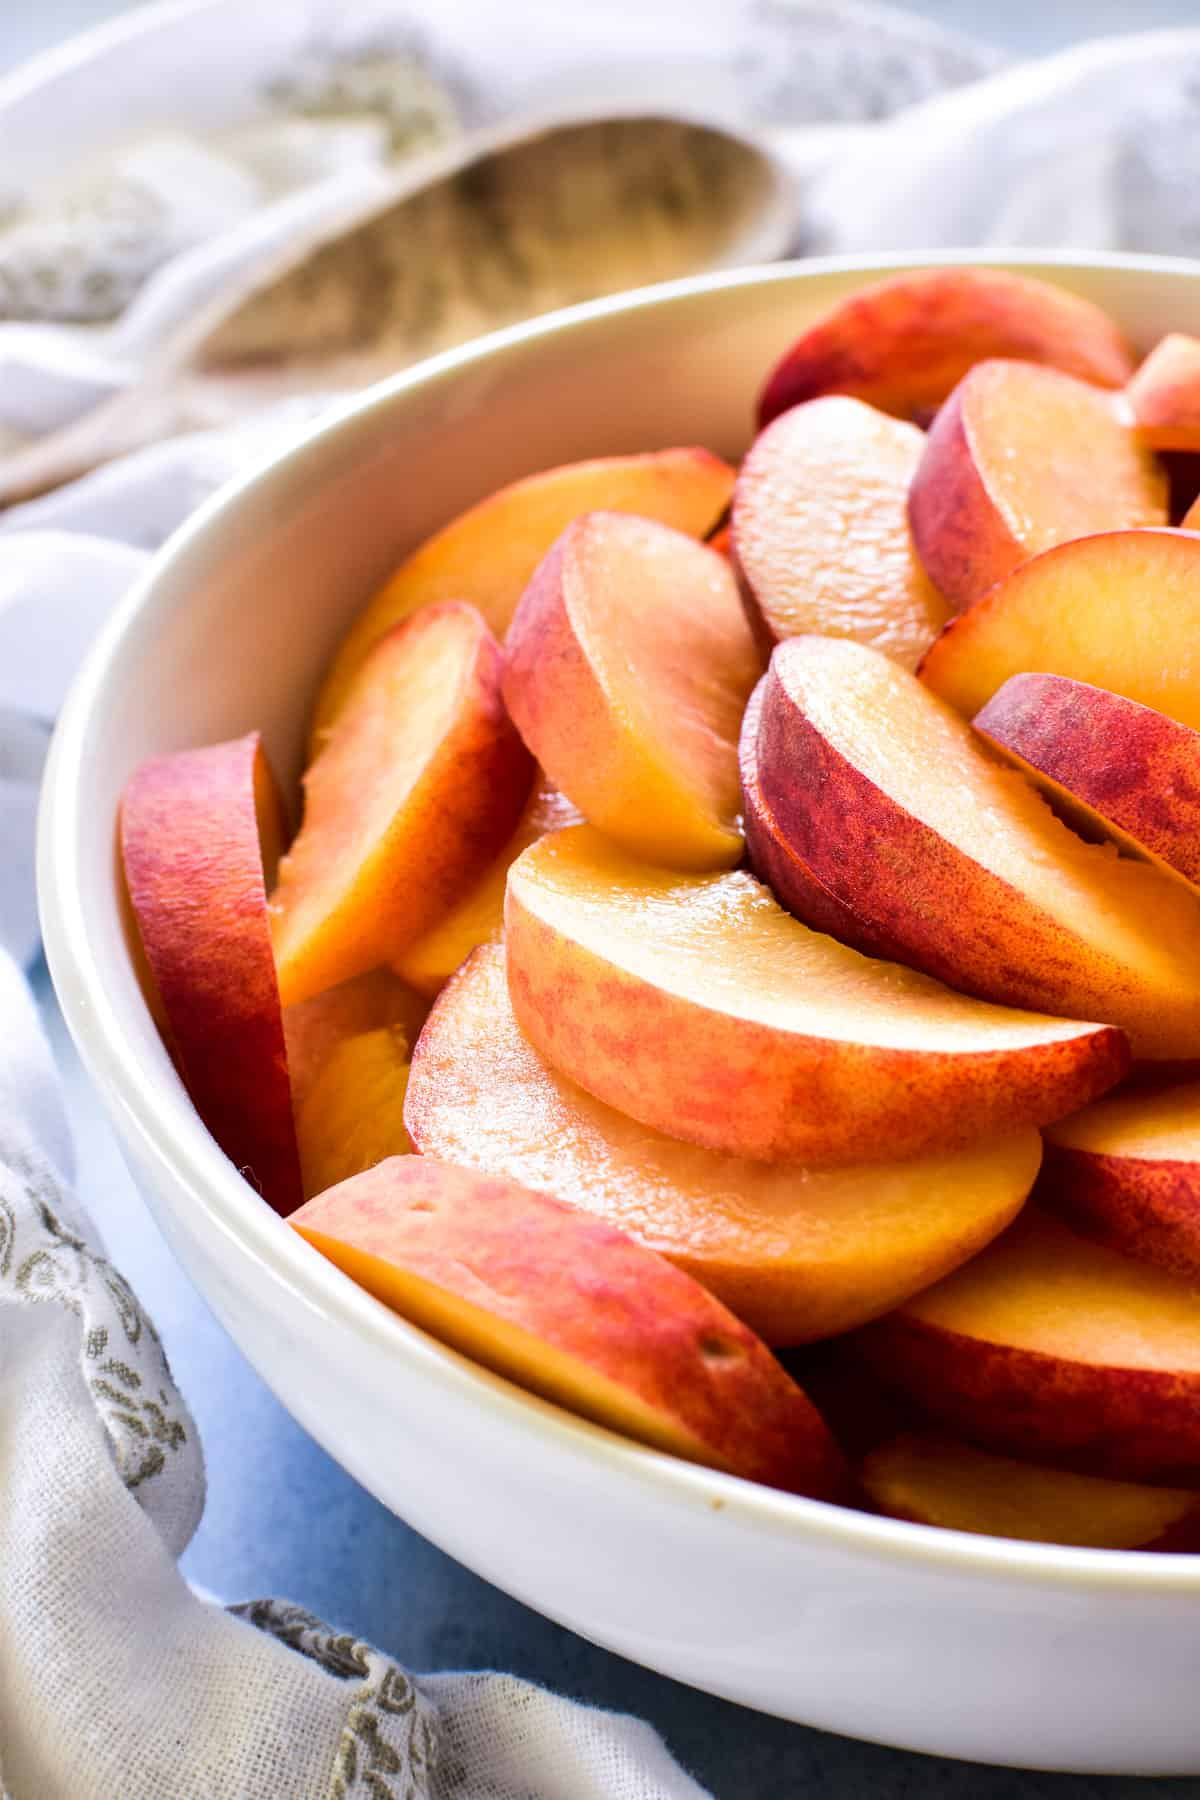 Sliced peaches in a white bowl